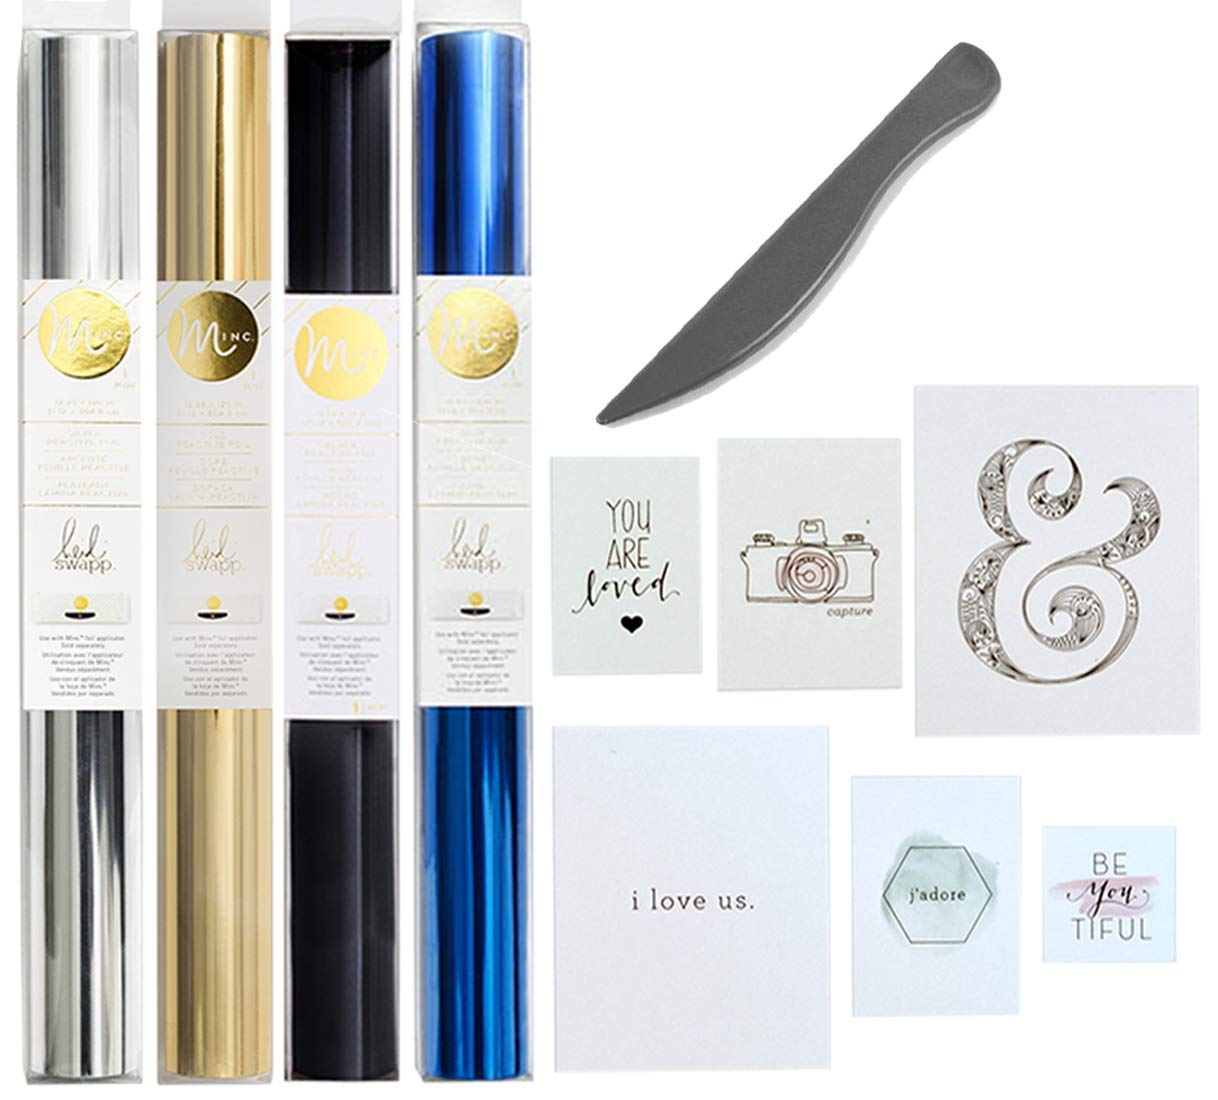 Heidi Swapp Minc Foil Accessories Bundle (6) with Silver, Blue, Black, Gold Foil, Wall Prints, and Scoring Tool by Heidi Swapp & WRMK